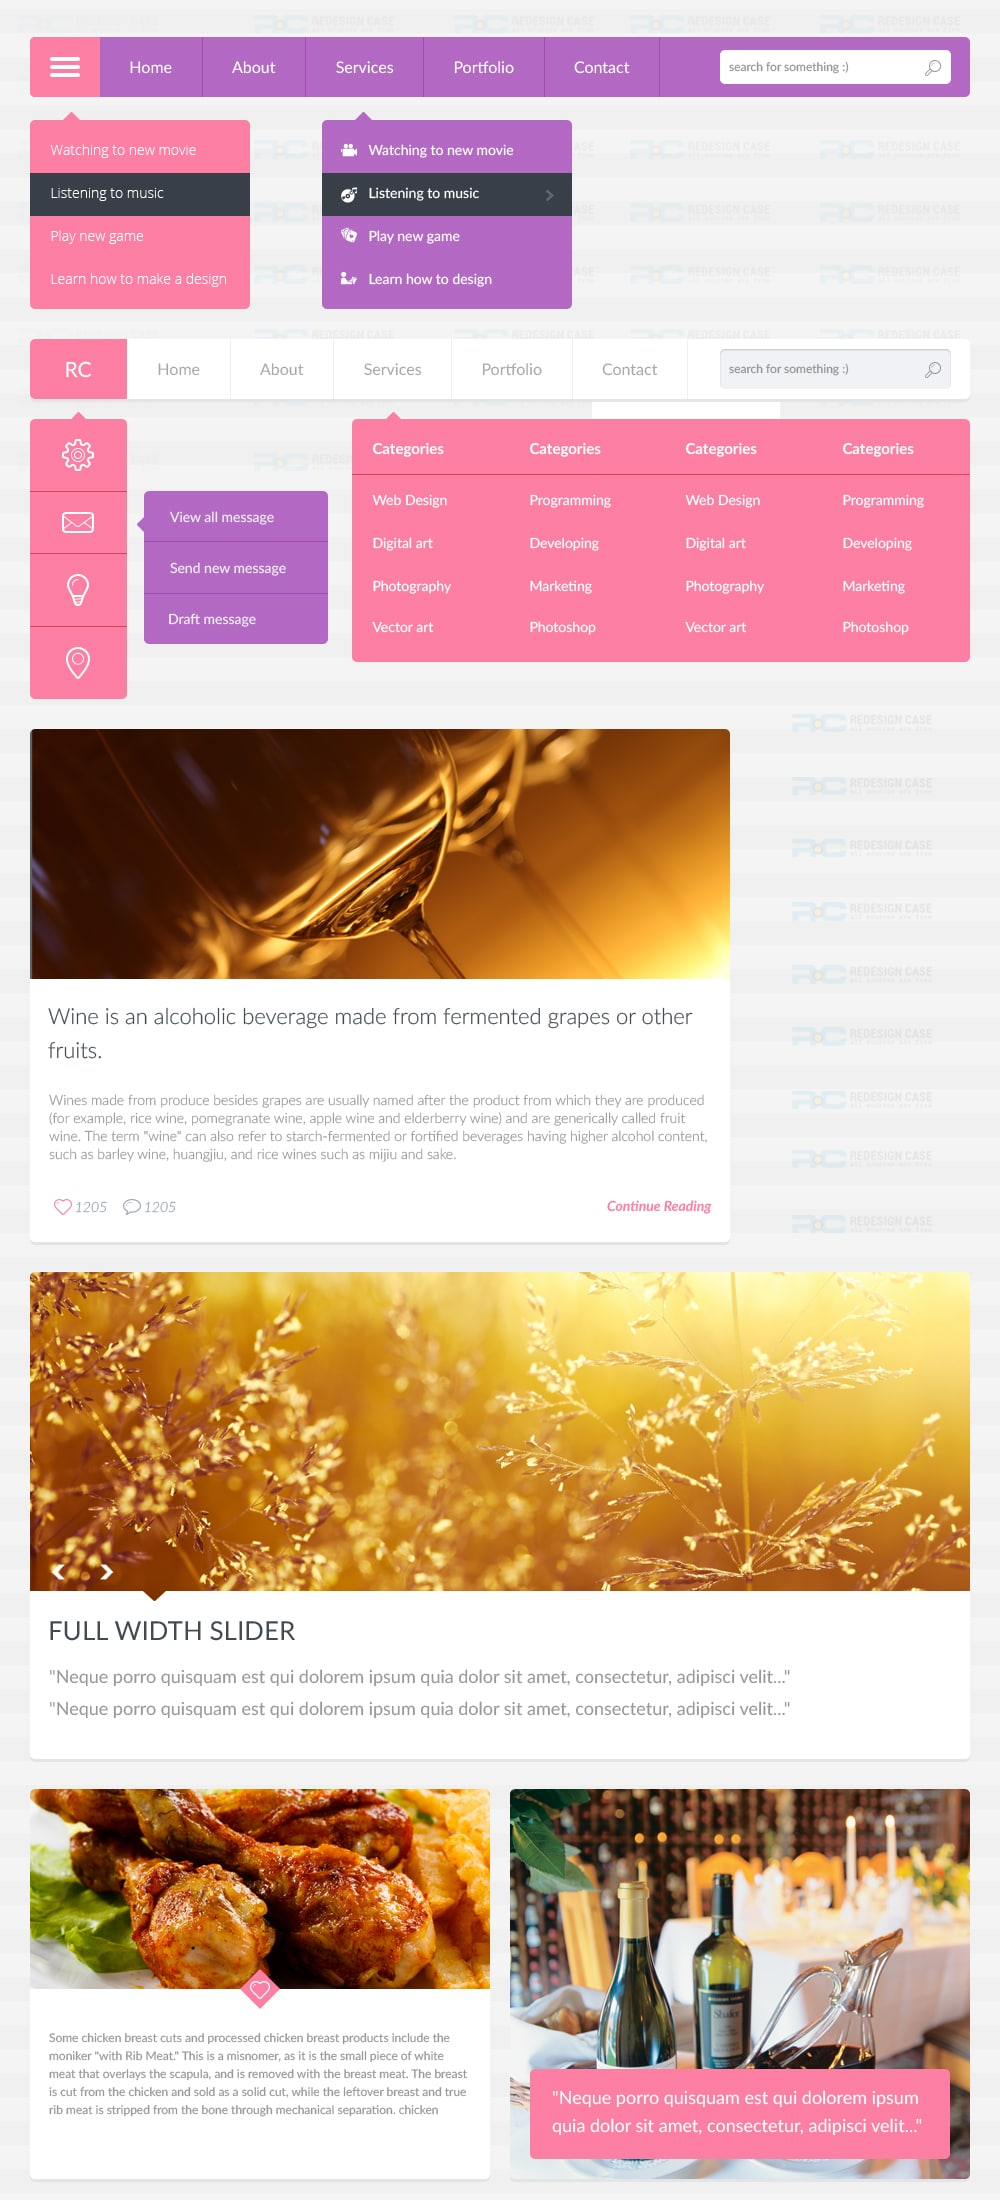 Flat-UI-PSD-for-Web